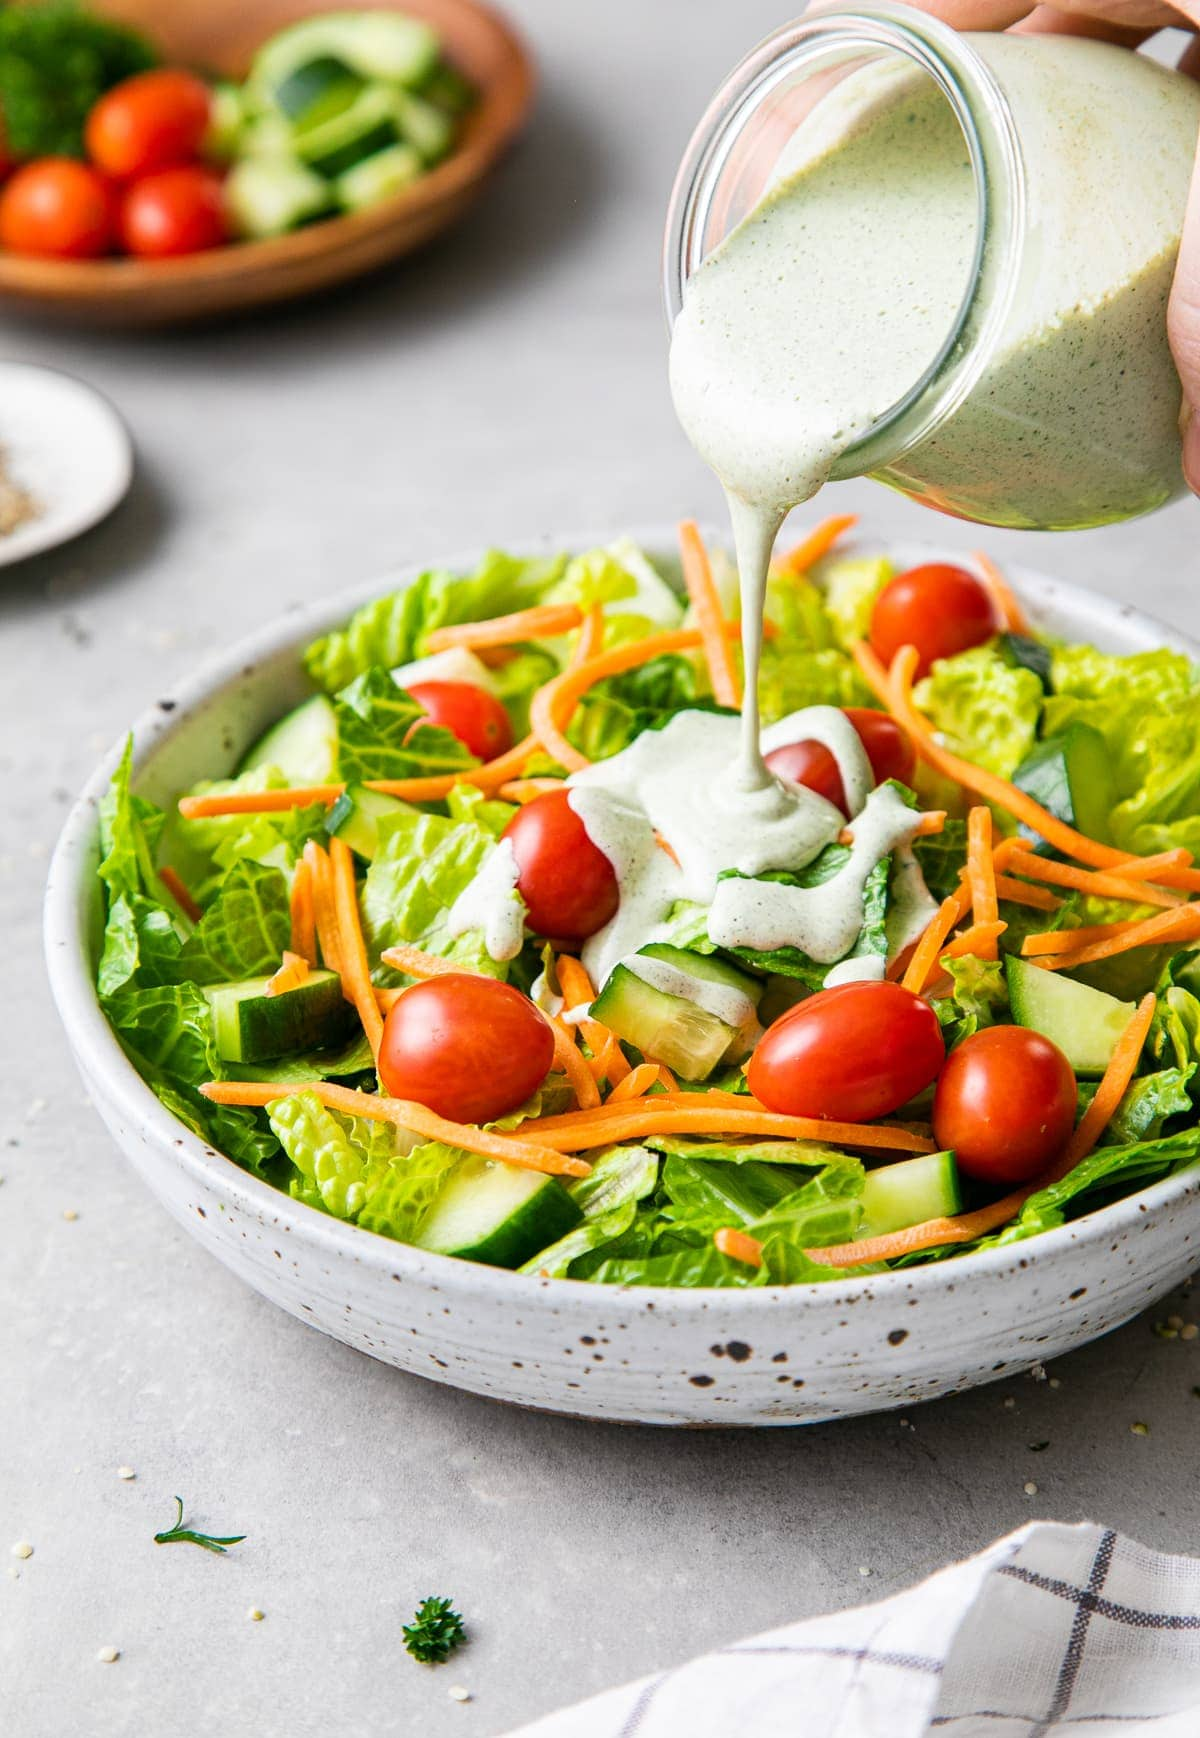 Creamy Ranch Hemp Dressing Quick Easy The Simple Veganista